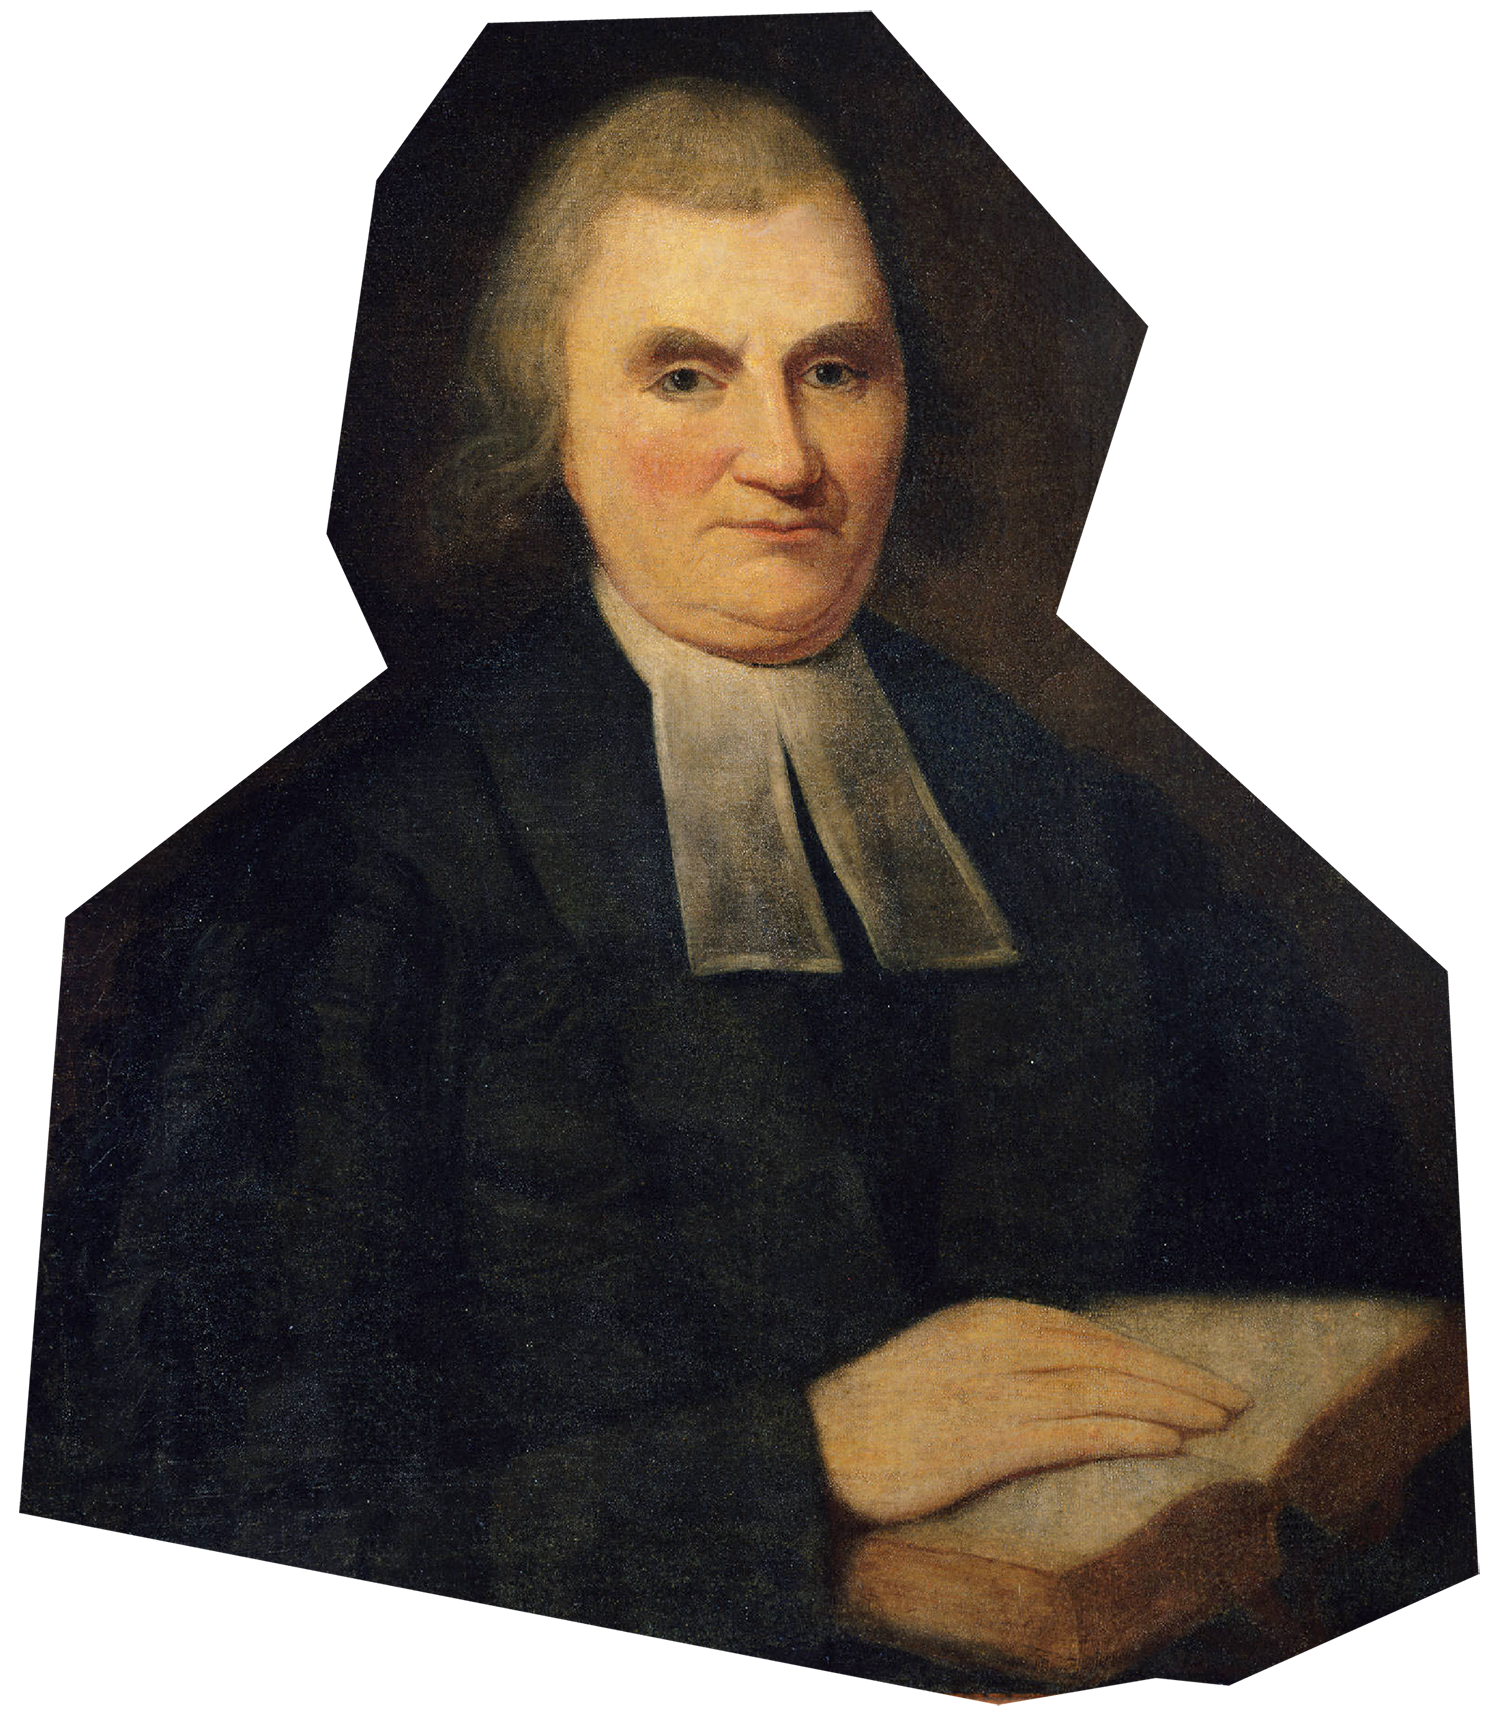 Portrait of John Witherspoon, Princeton's sixth president.